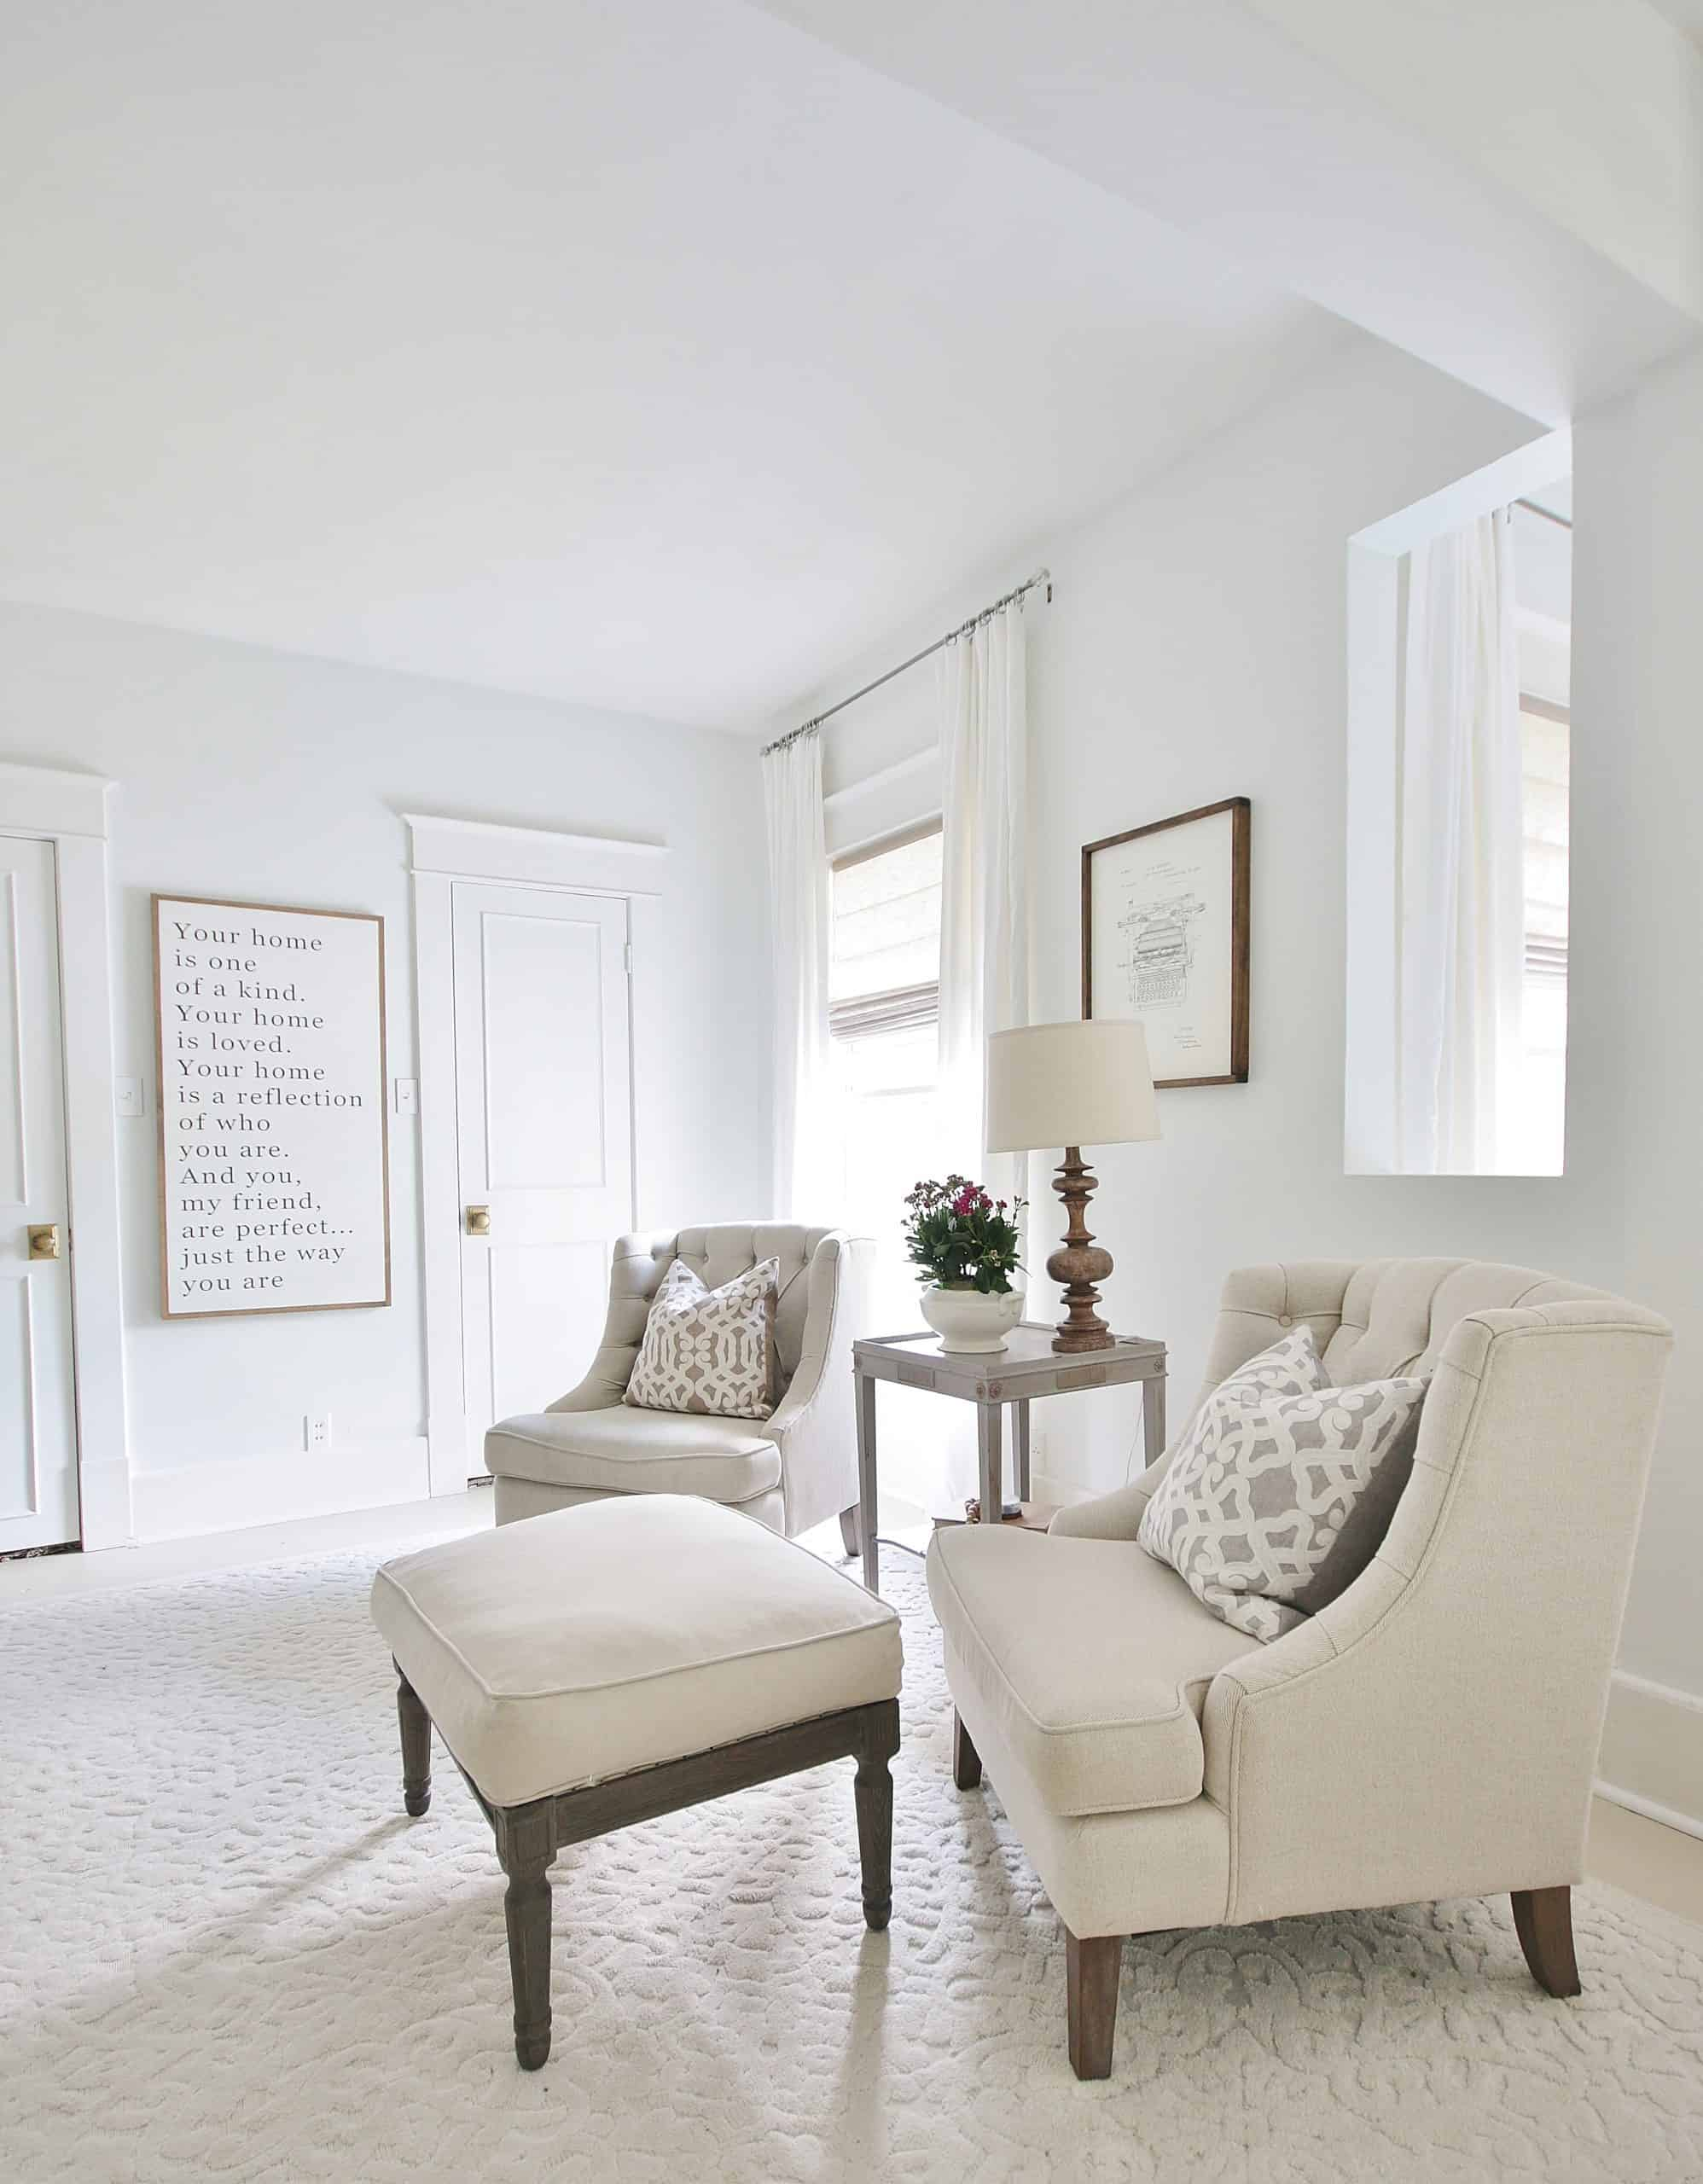 white chairs in bedroom